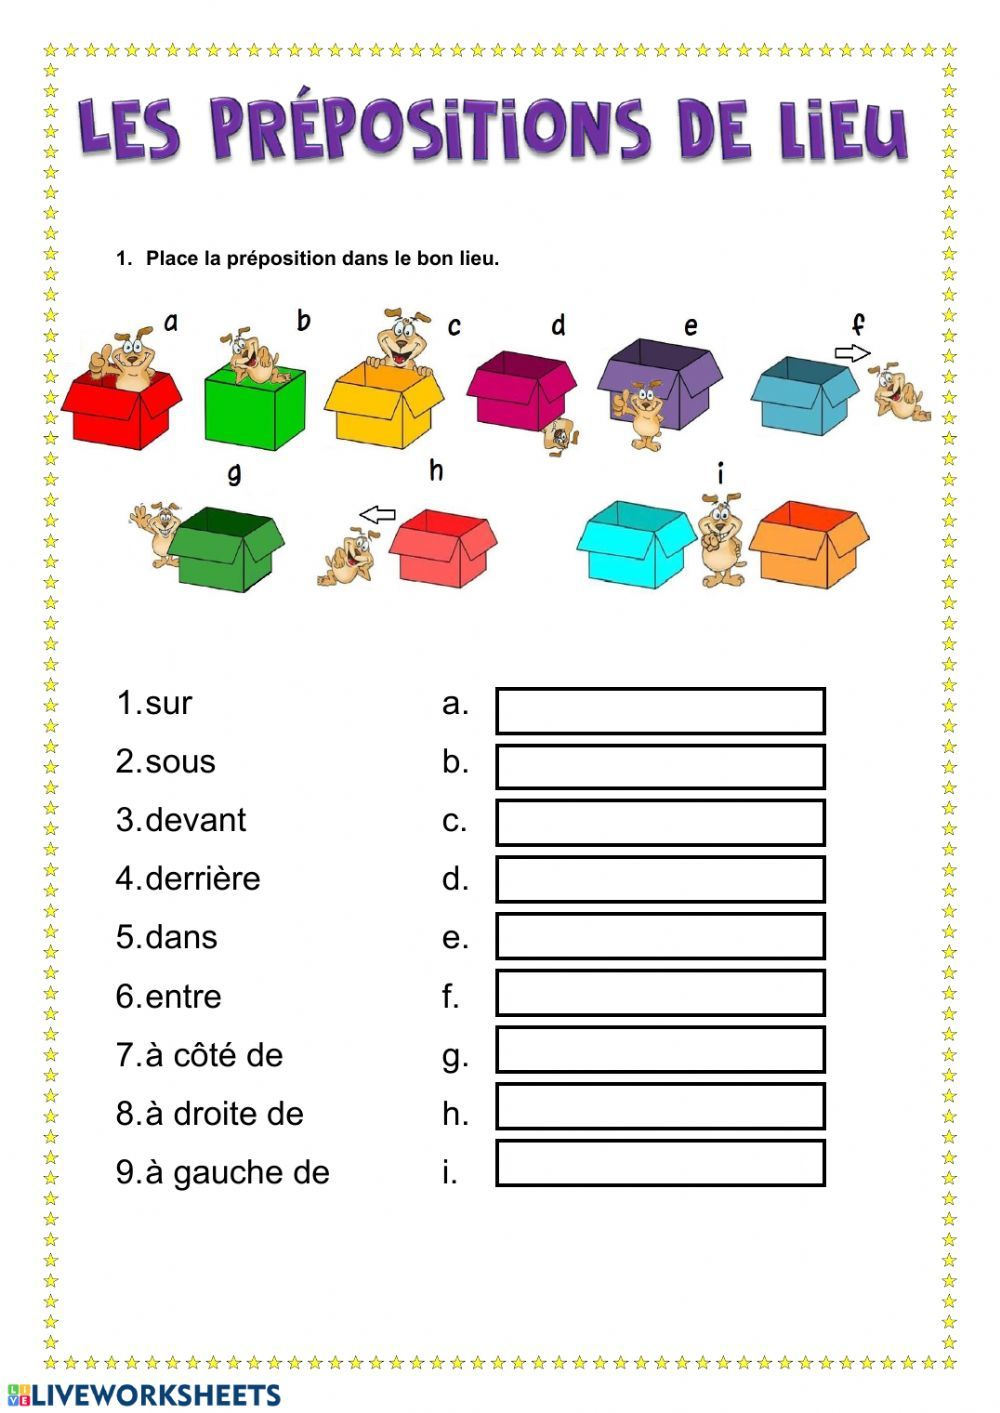 medium resolution of Les prépositions de lieu interactive and downloadable worksheet. You can do  the exercises onli…   Preposition worksheets